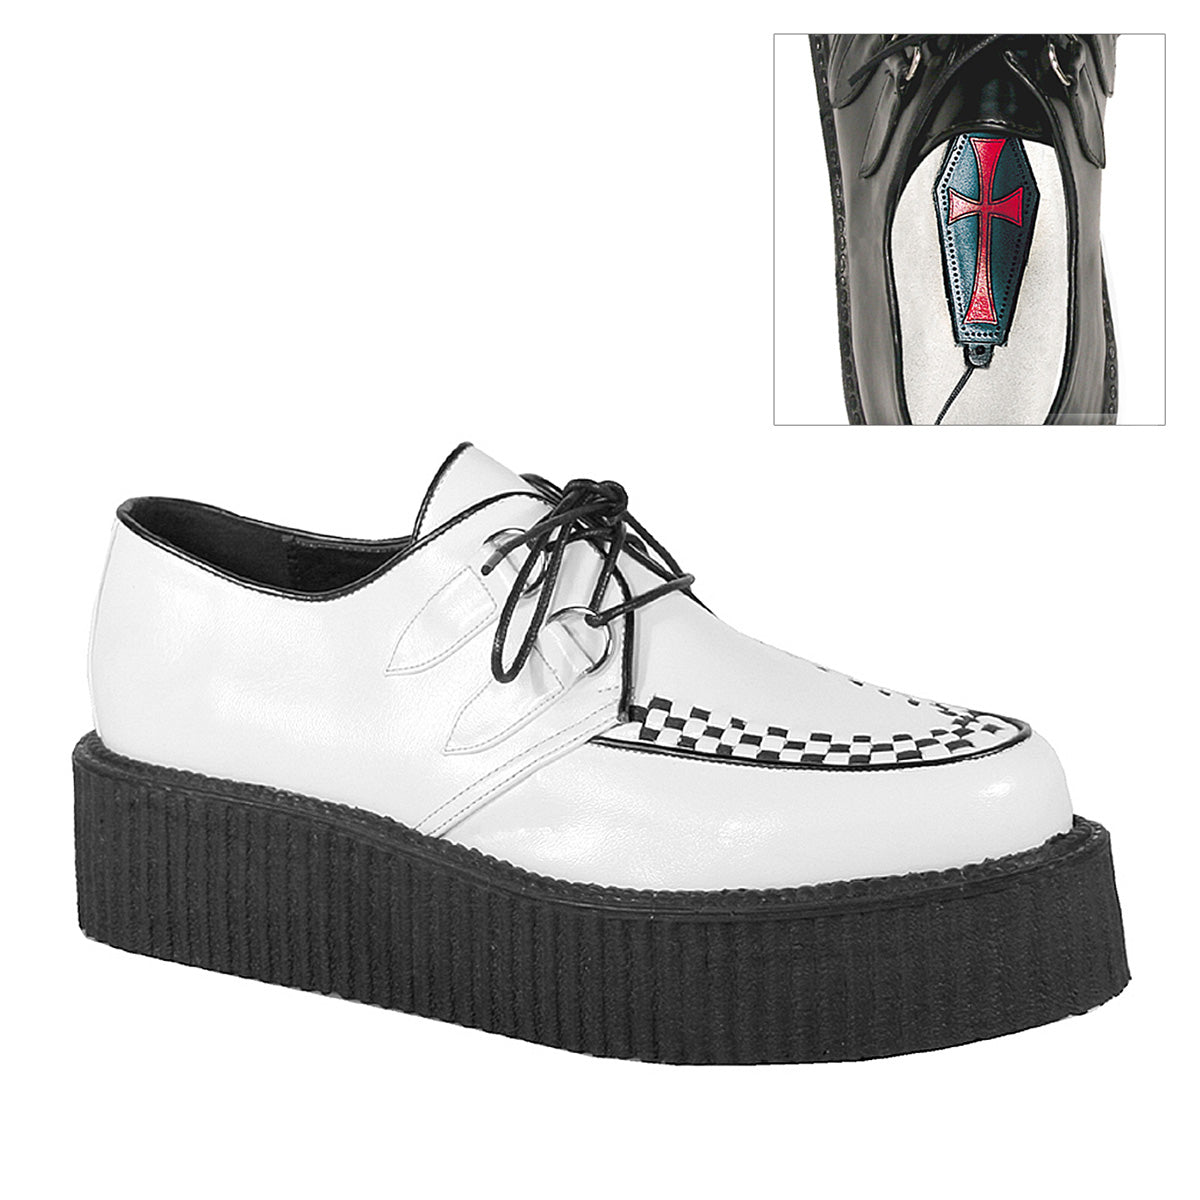 "2"" PF Basic Vegan Creeper Shoe, w/ Stitching"